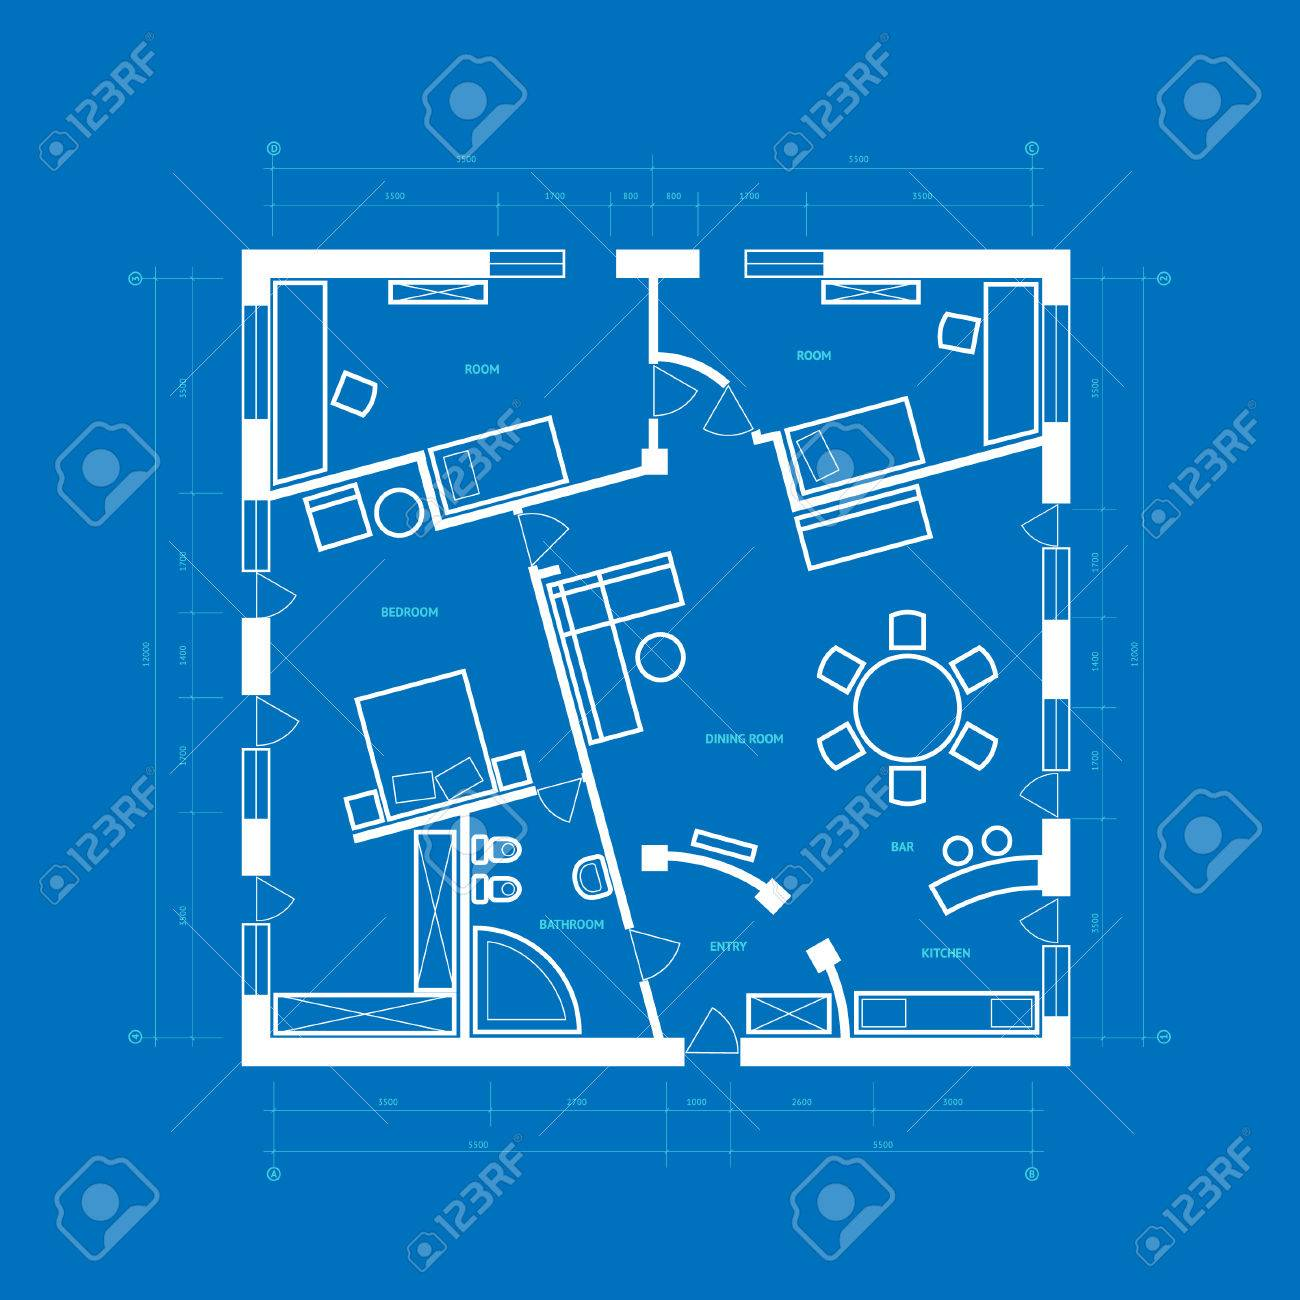 Abstract blueprint background in blue and white colors. Stock Vector - 6834090